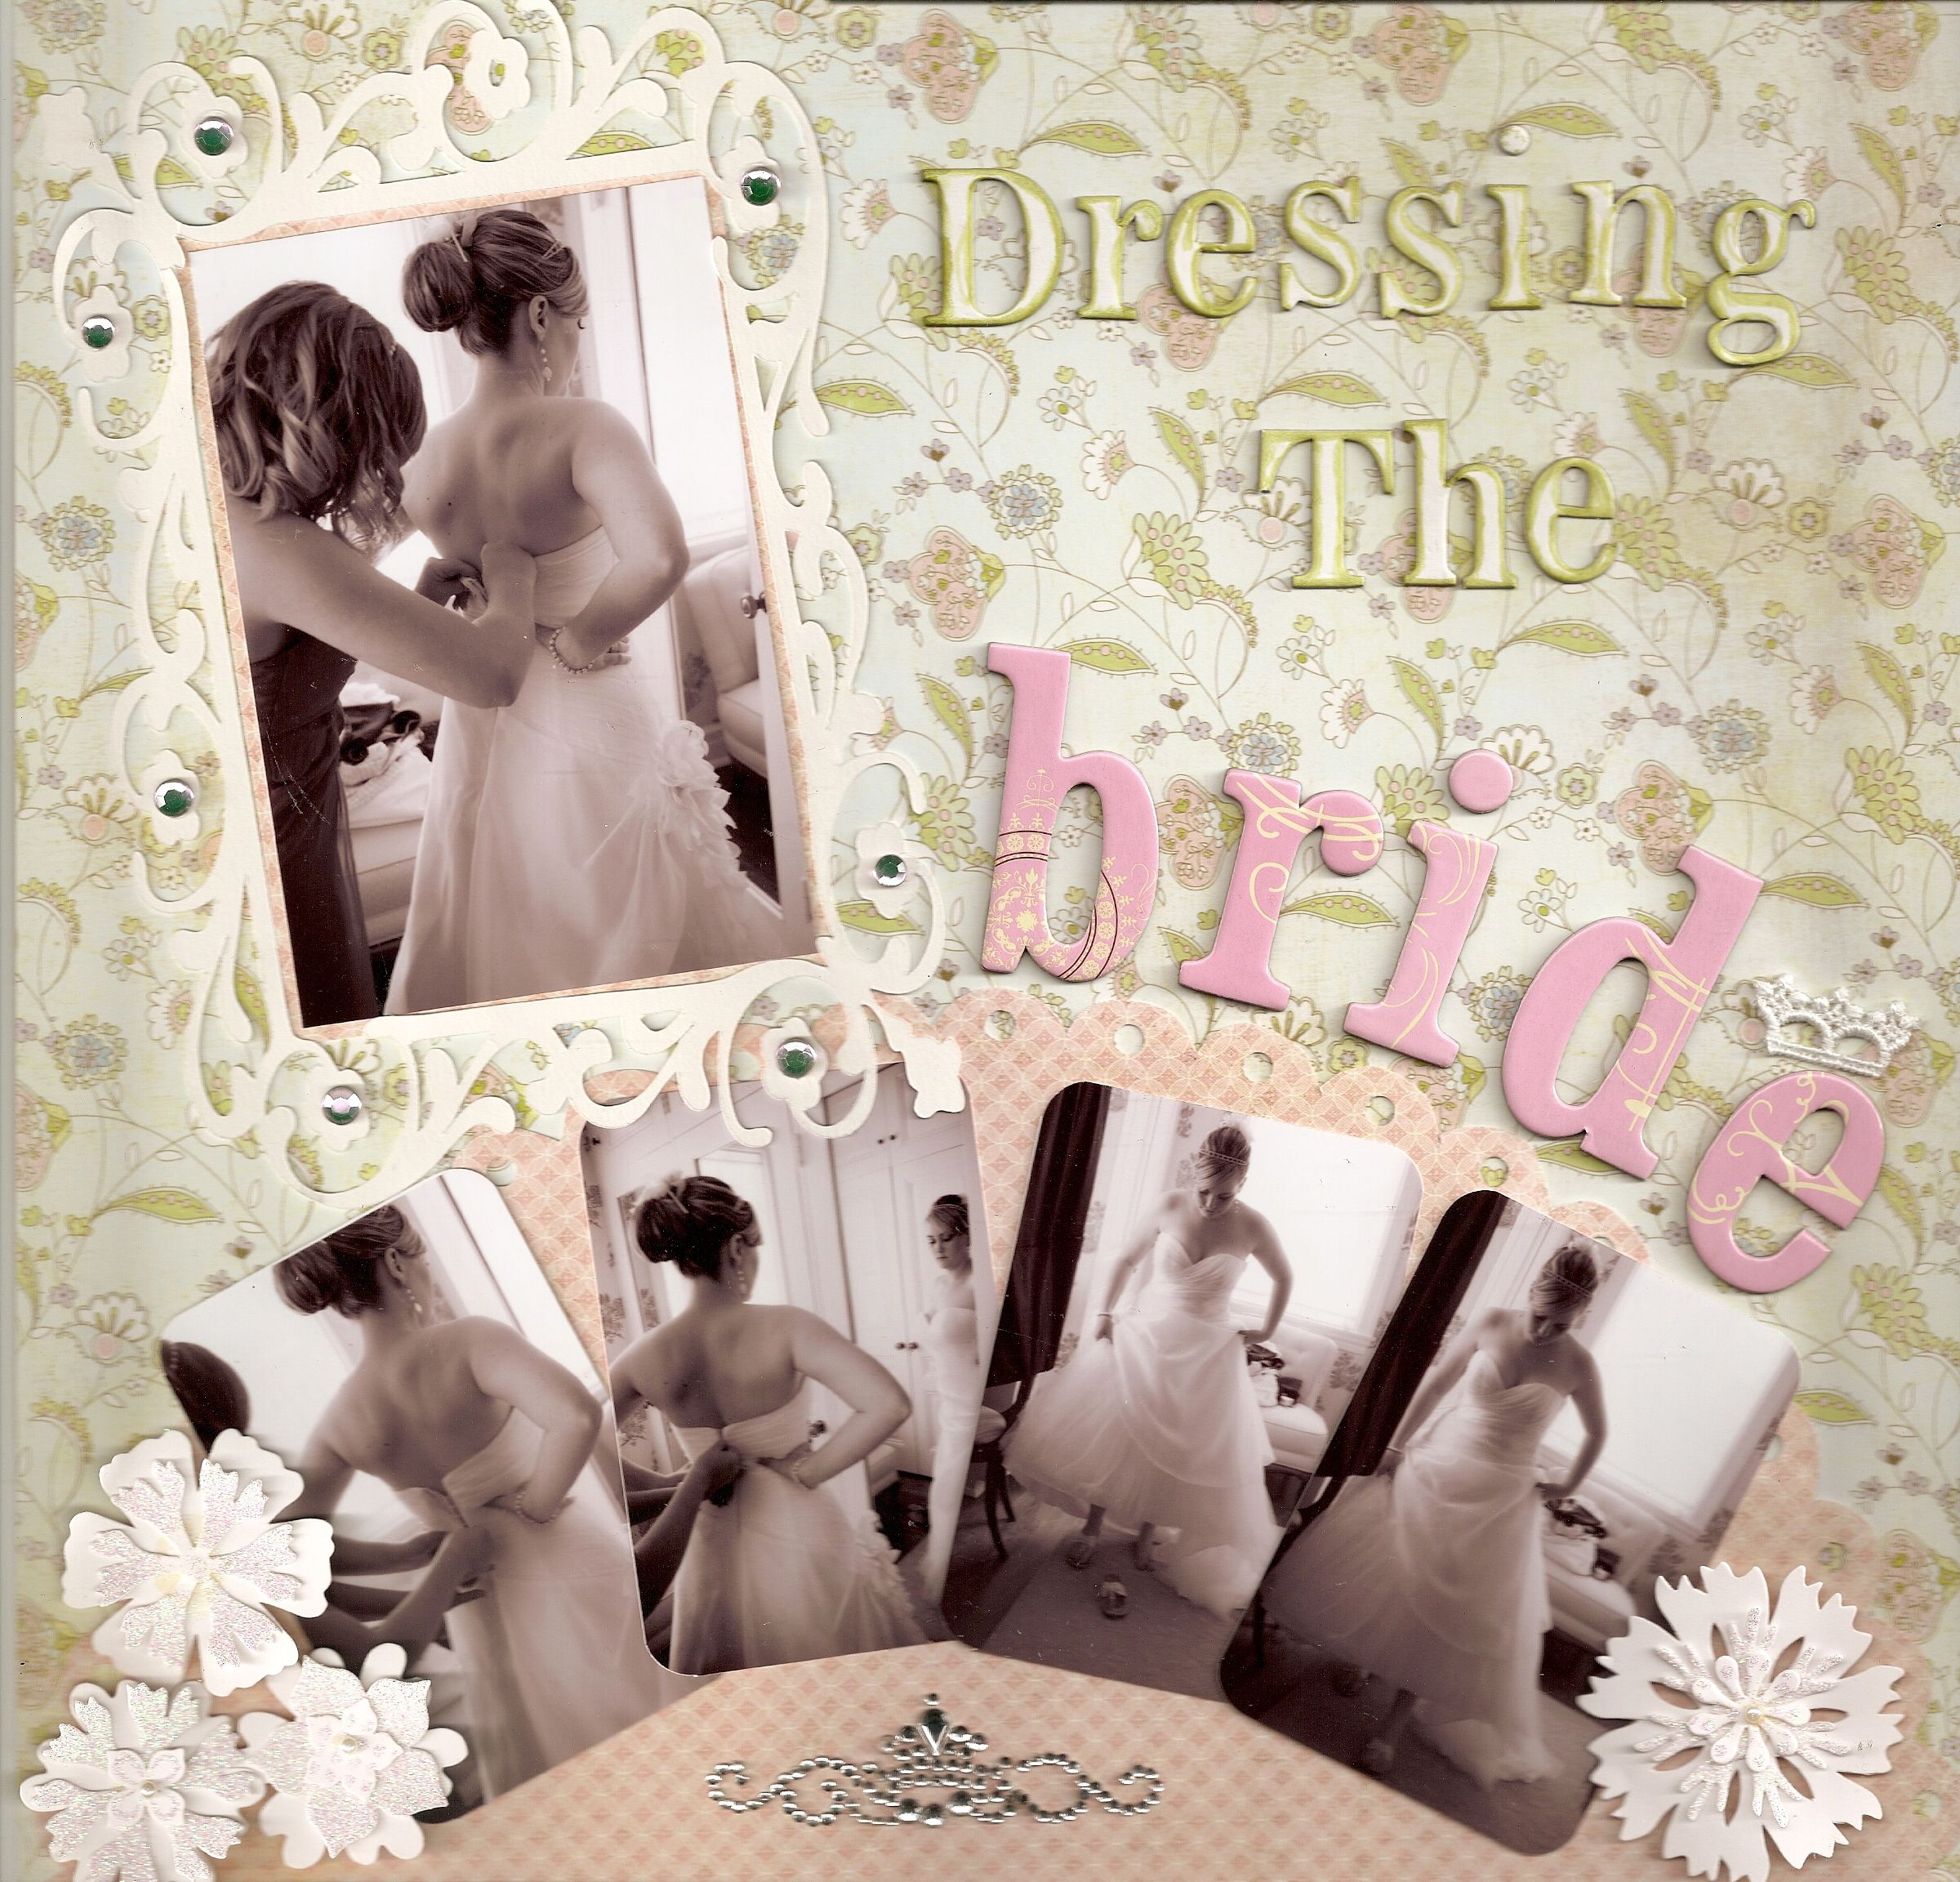 Dressing the Bride   Scrapbook comDressing the Bride   Scrapbook com   Scrap   Wedding   Pinterest  . Premade Wedding Scrapbook. Home Design Ideas